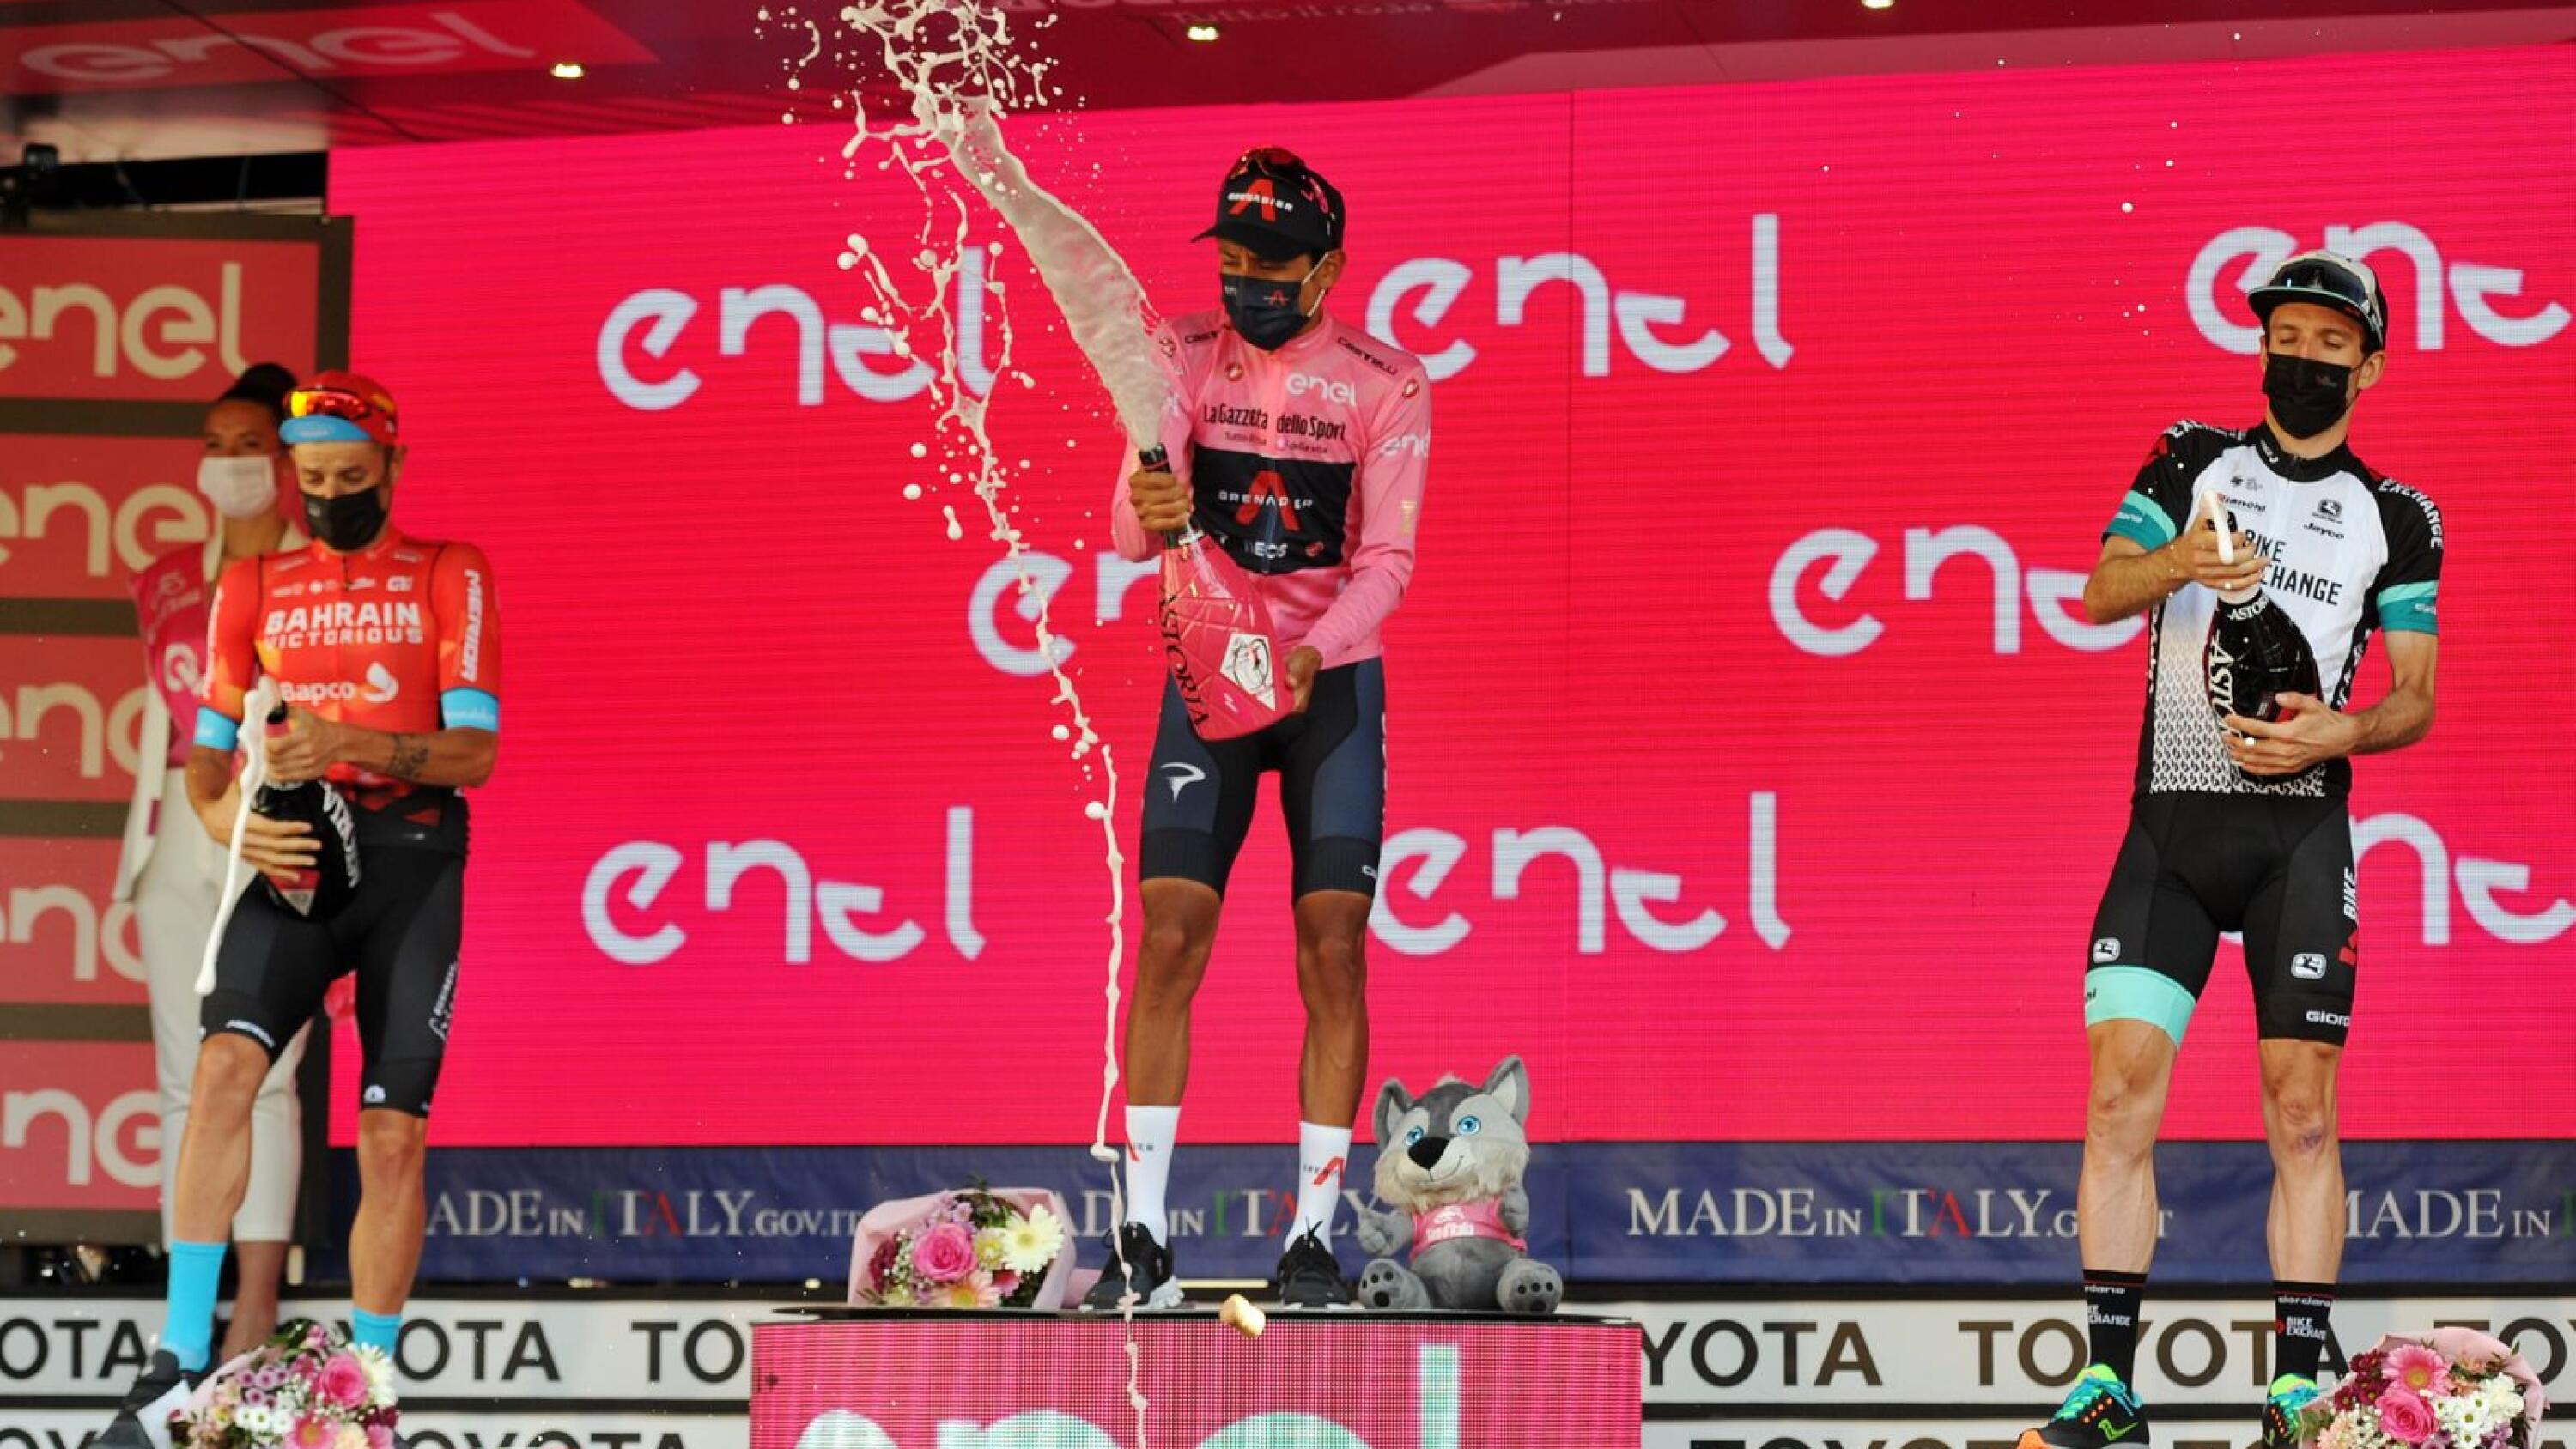 Ineos Grenadiers rider Egan Arley Bernal Gomez of Colombia on the podium as he celebrates wearing the maglia rosa